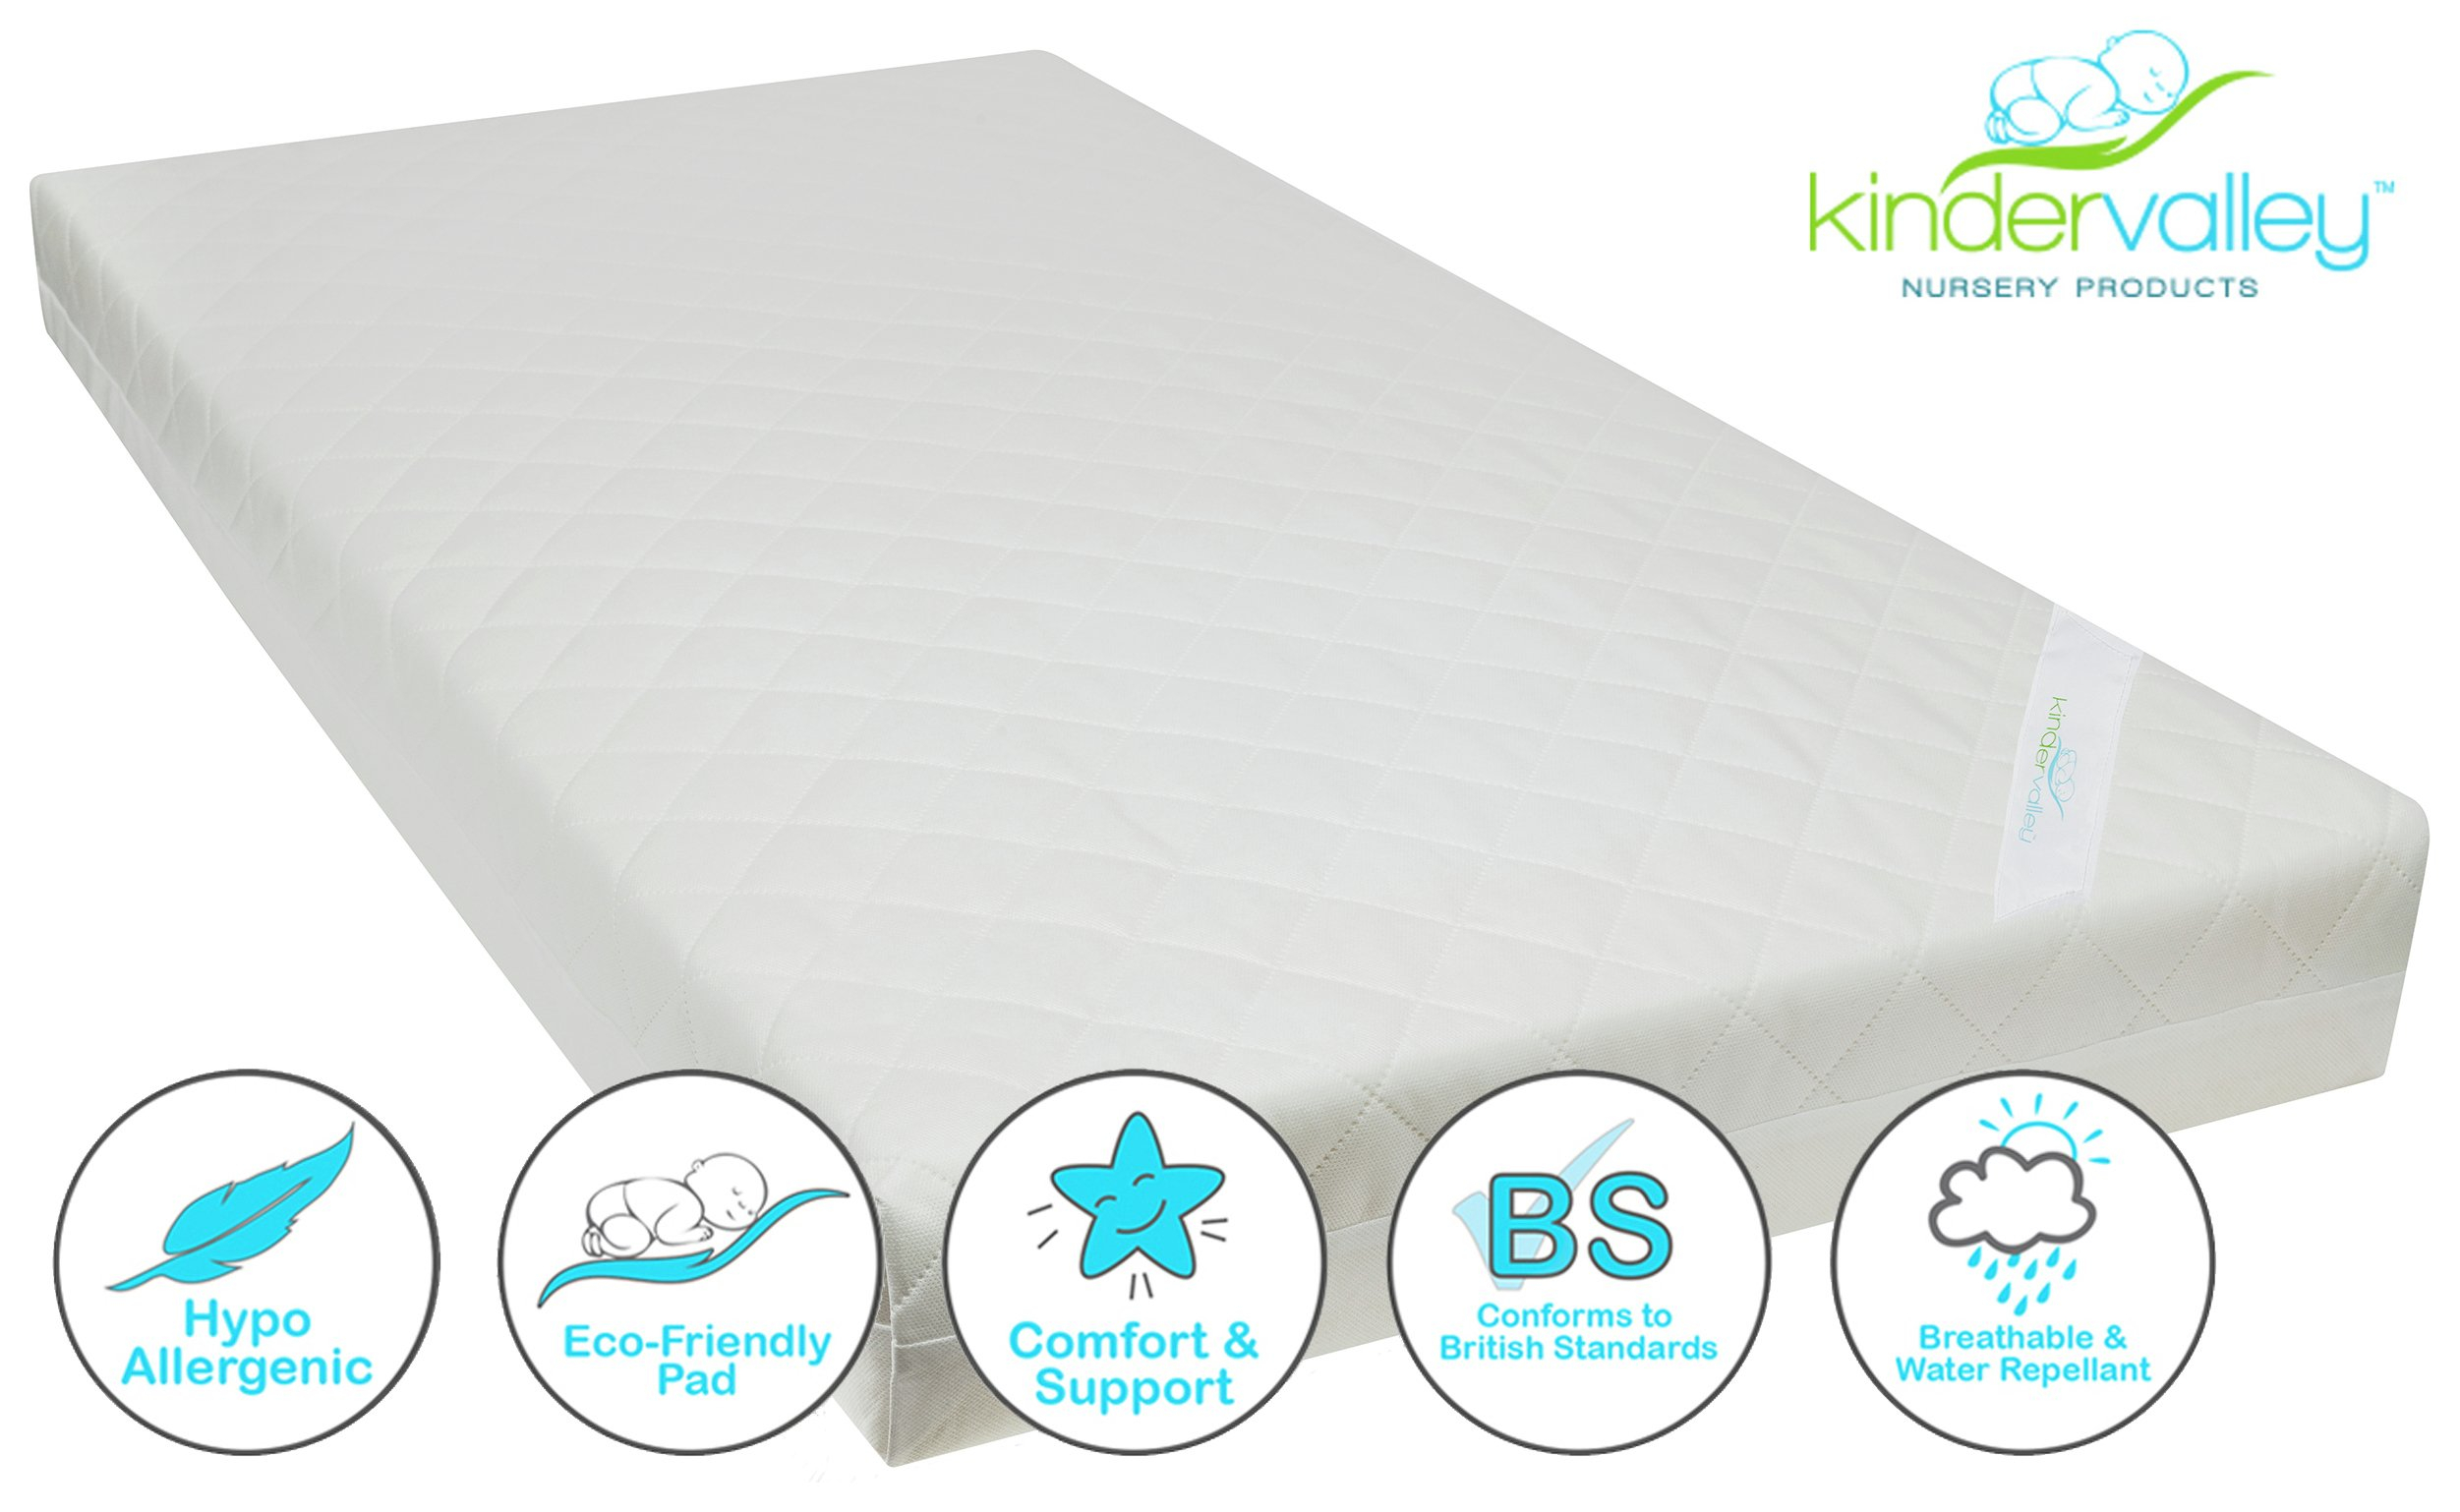 Image of Kinder Valley Deluxe Spring Cot Mattress- 120cmx60cm.